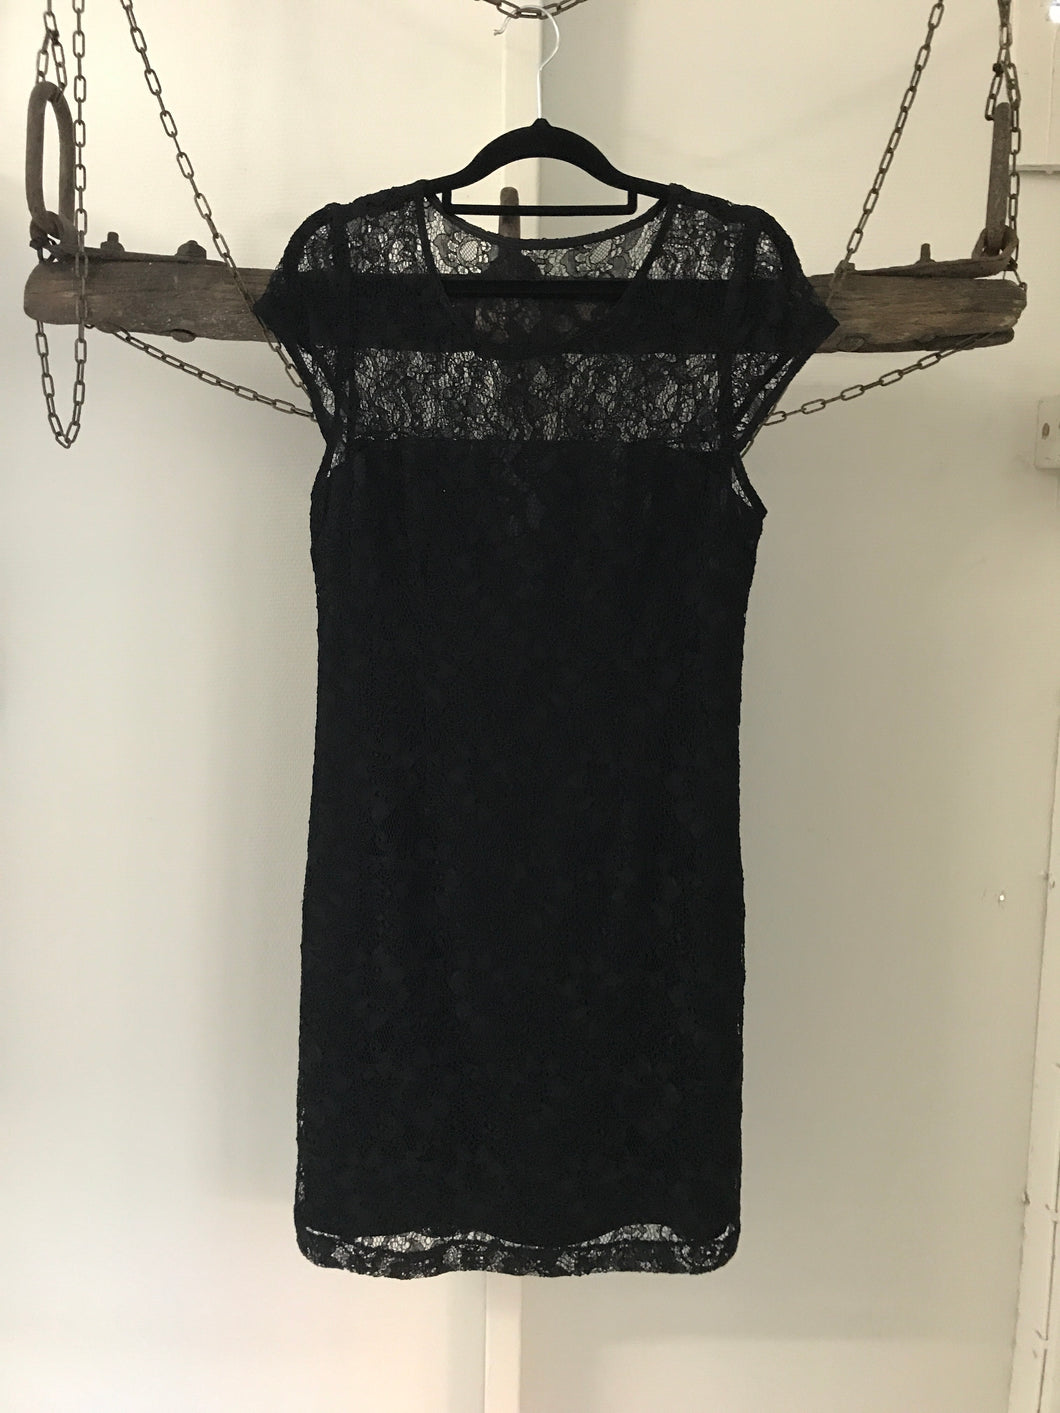 Portmans black lace dress with small sleeves Size 10 NWT